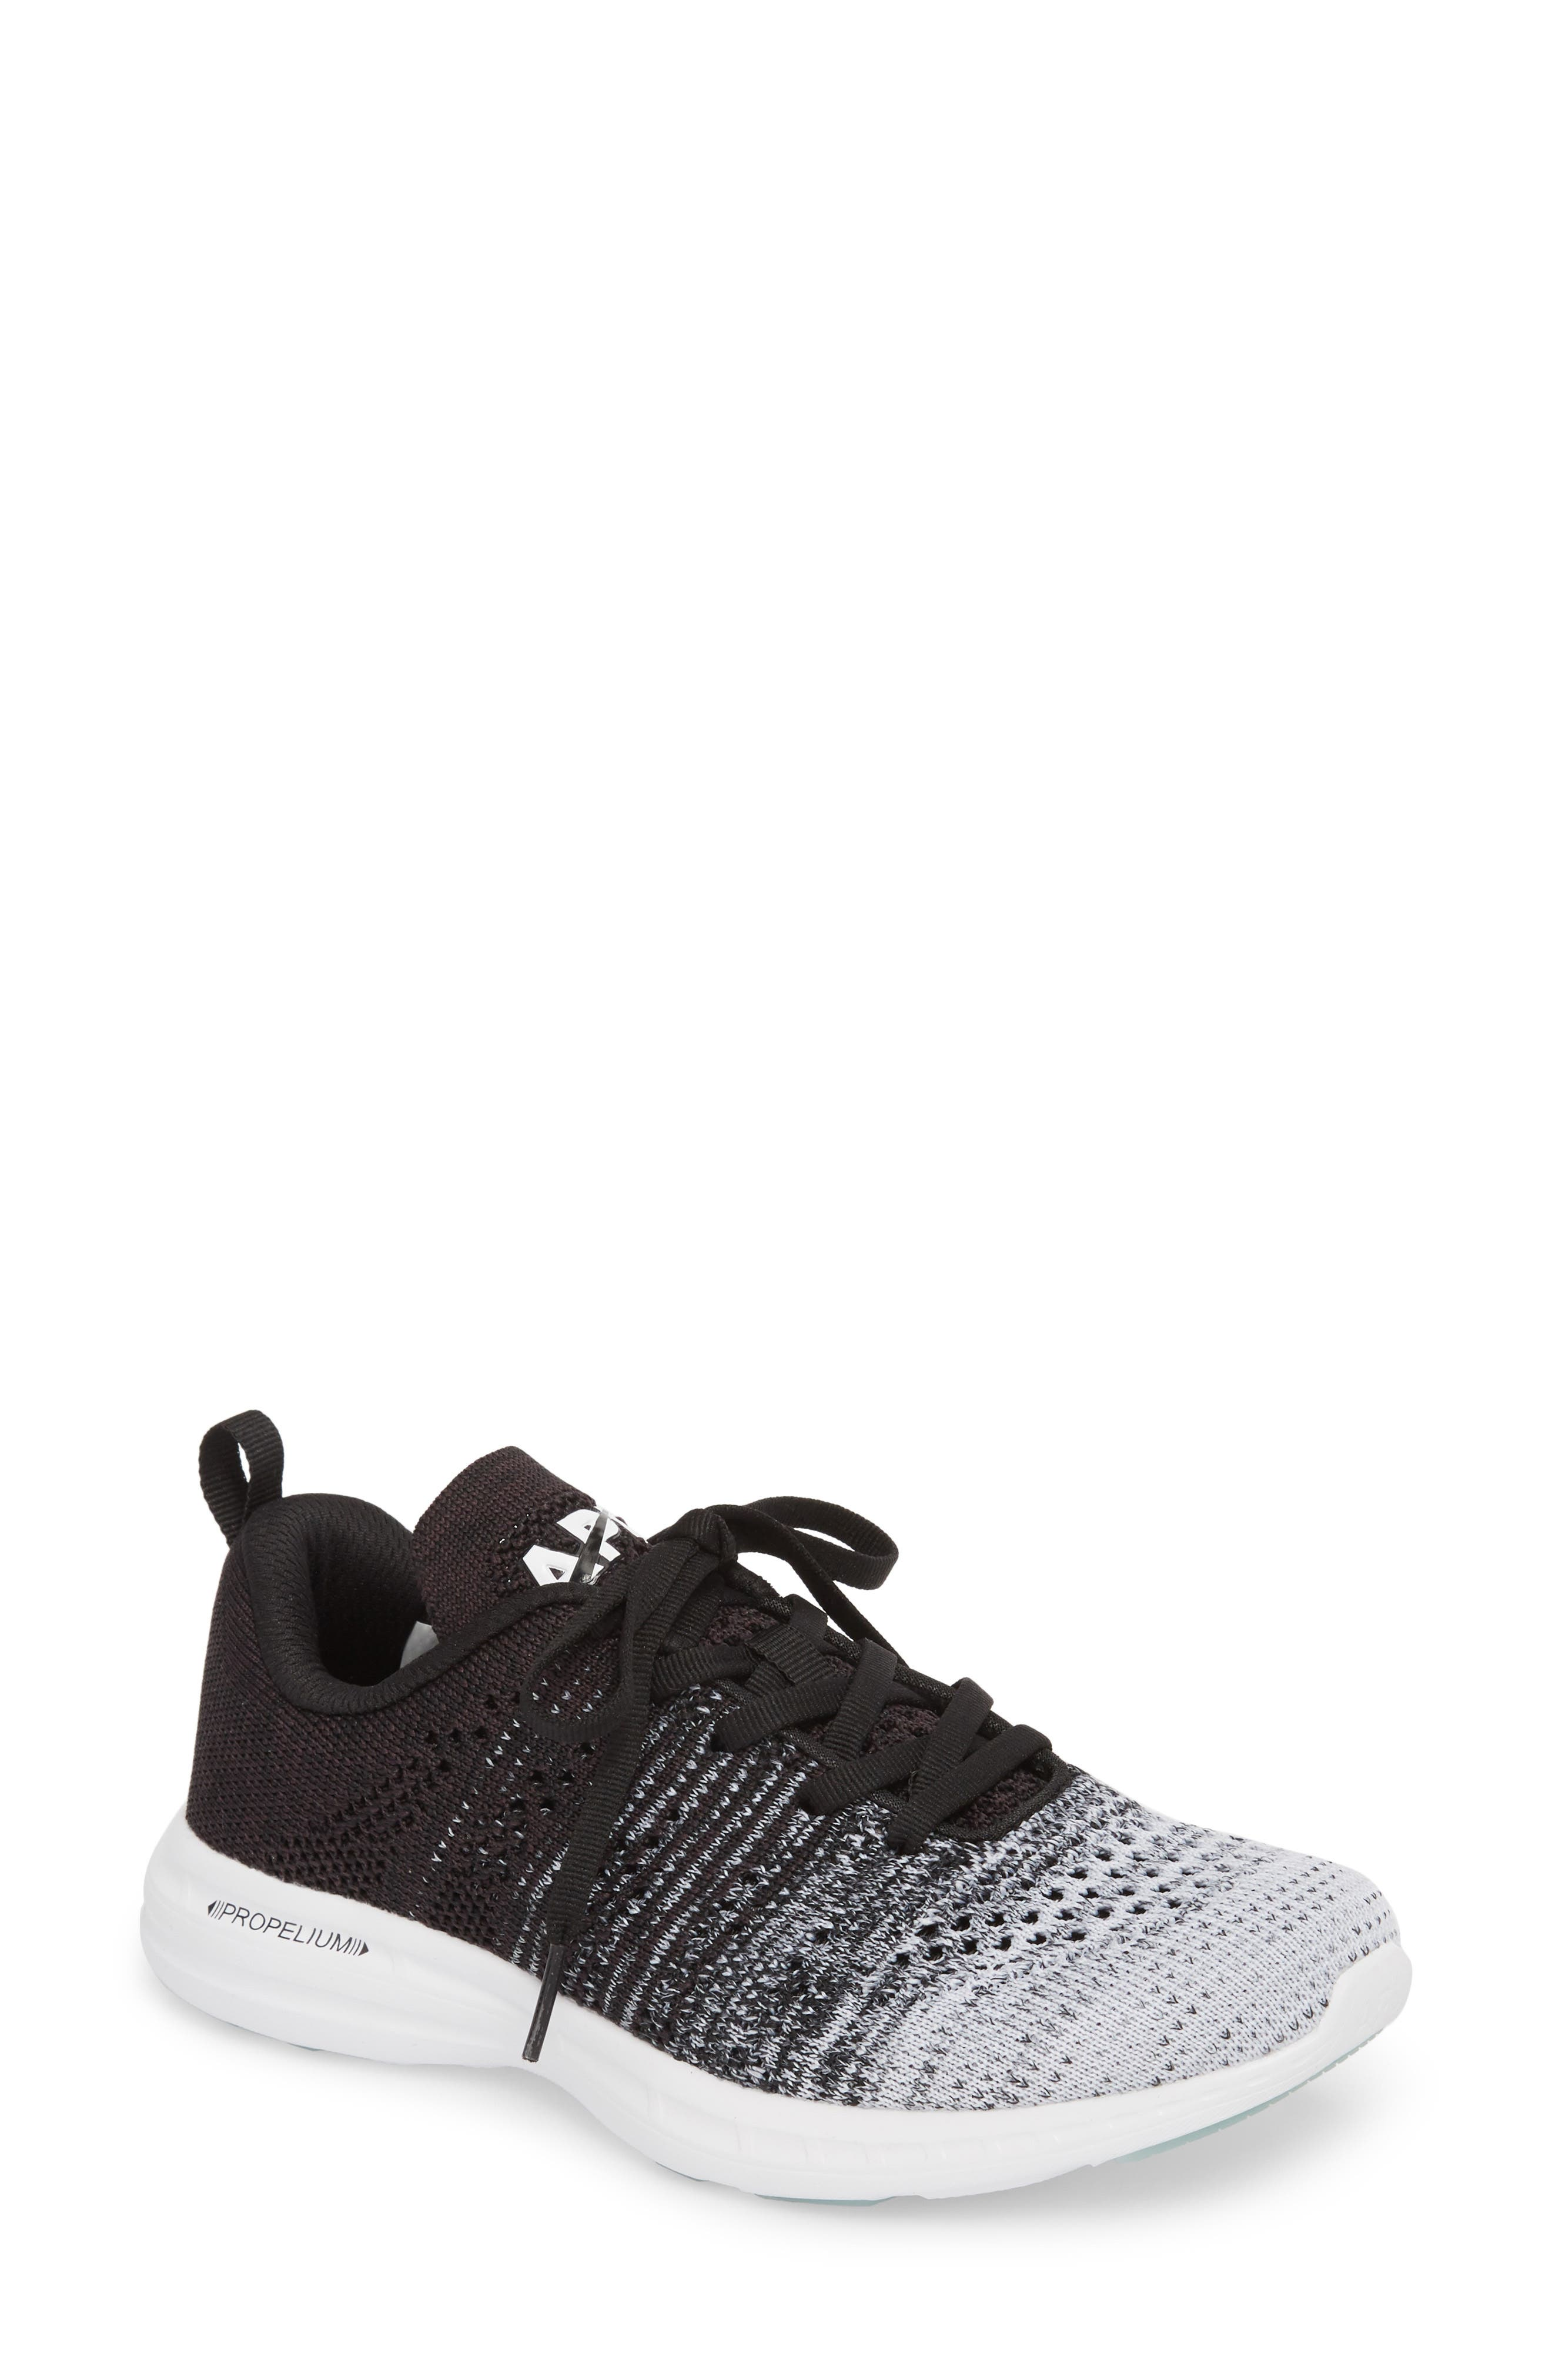 APL ATHLETIC PROPULSION LABS Athletic Propulsion Labs Women'S Techloom Pro Knit Low-Top Sneakers in White/ Heather Grey/ Black